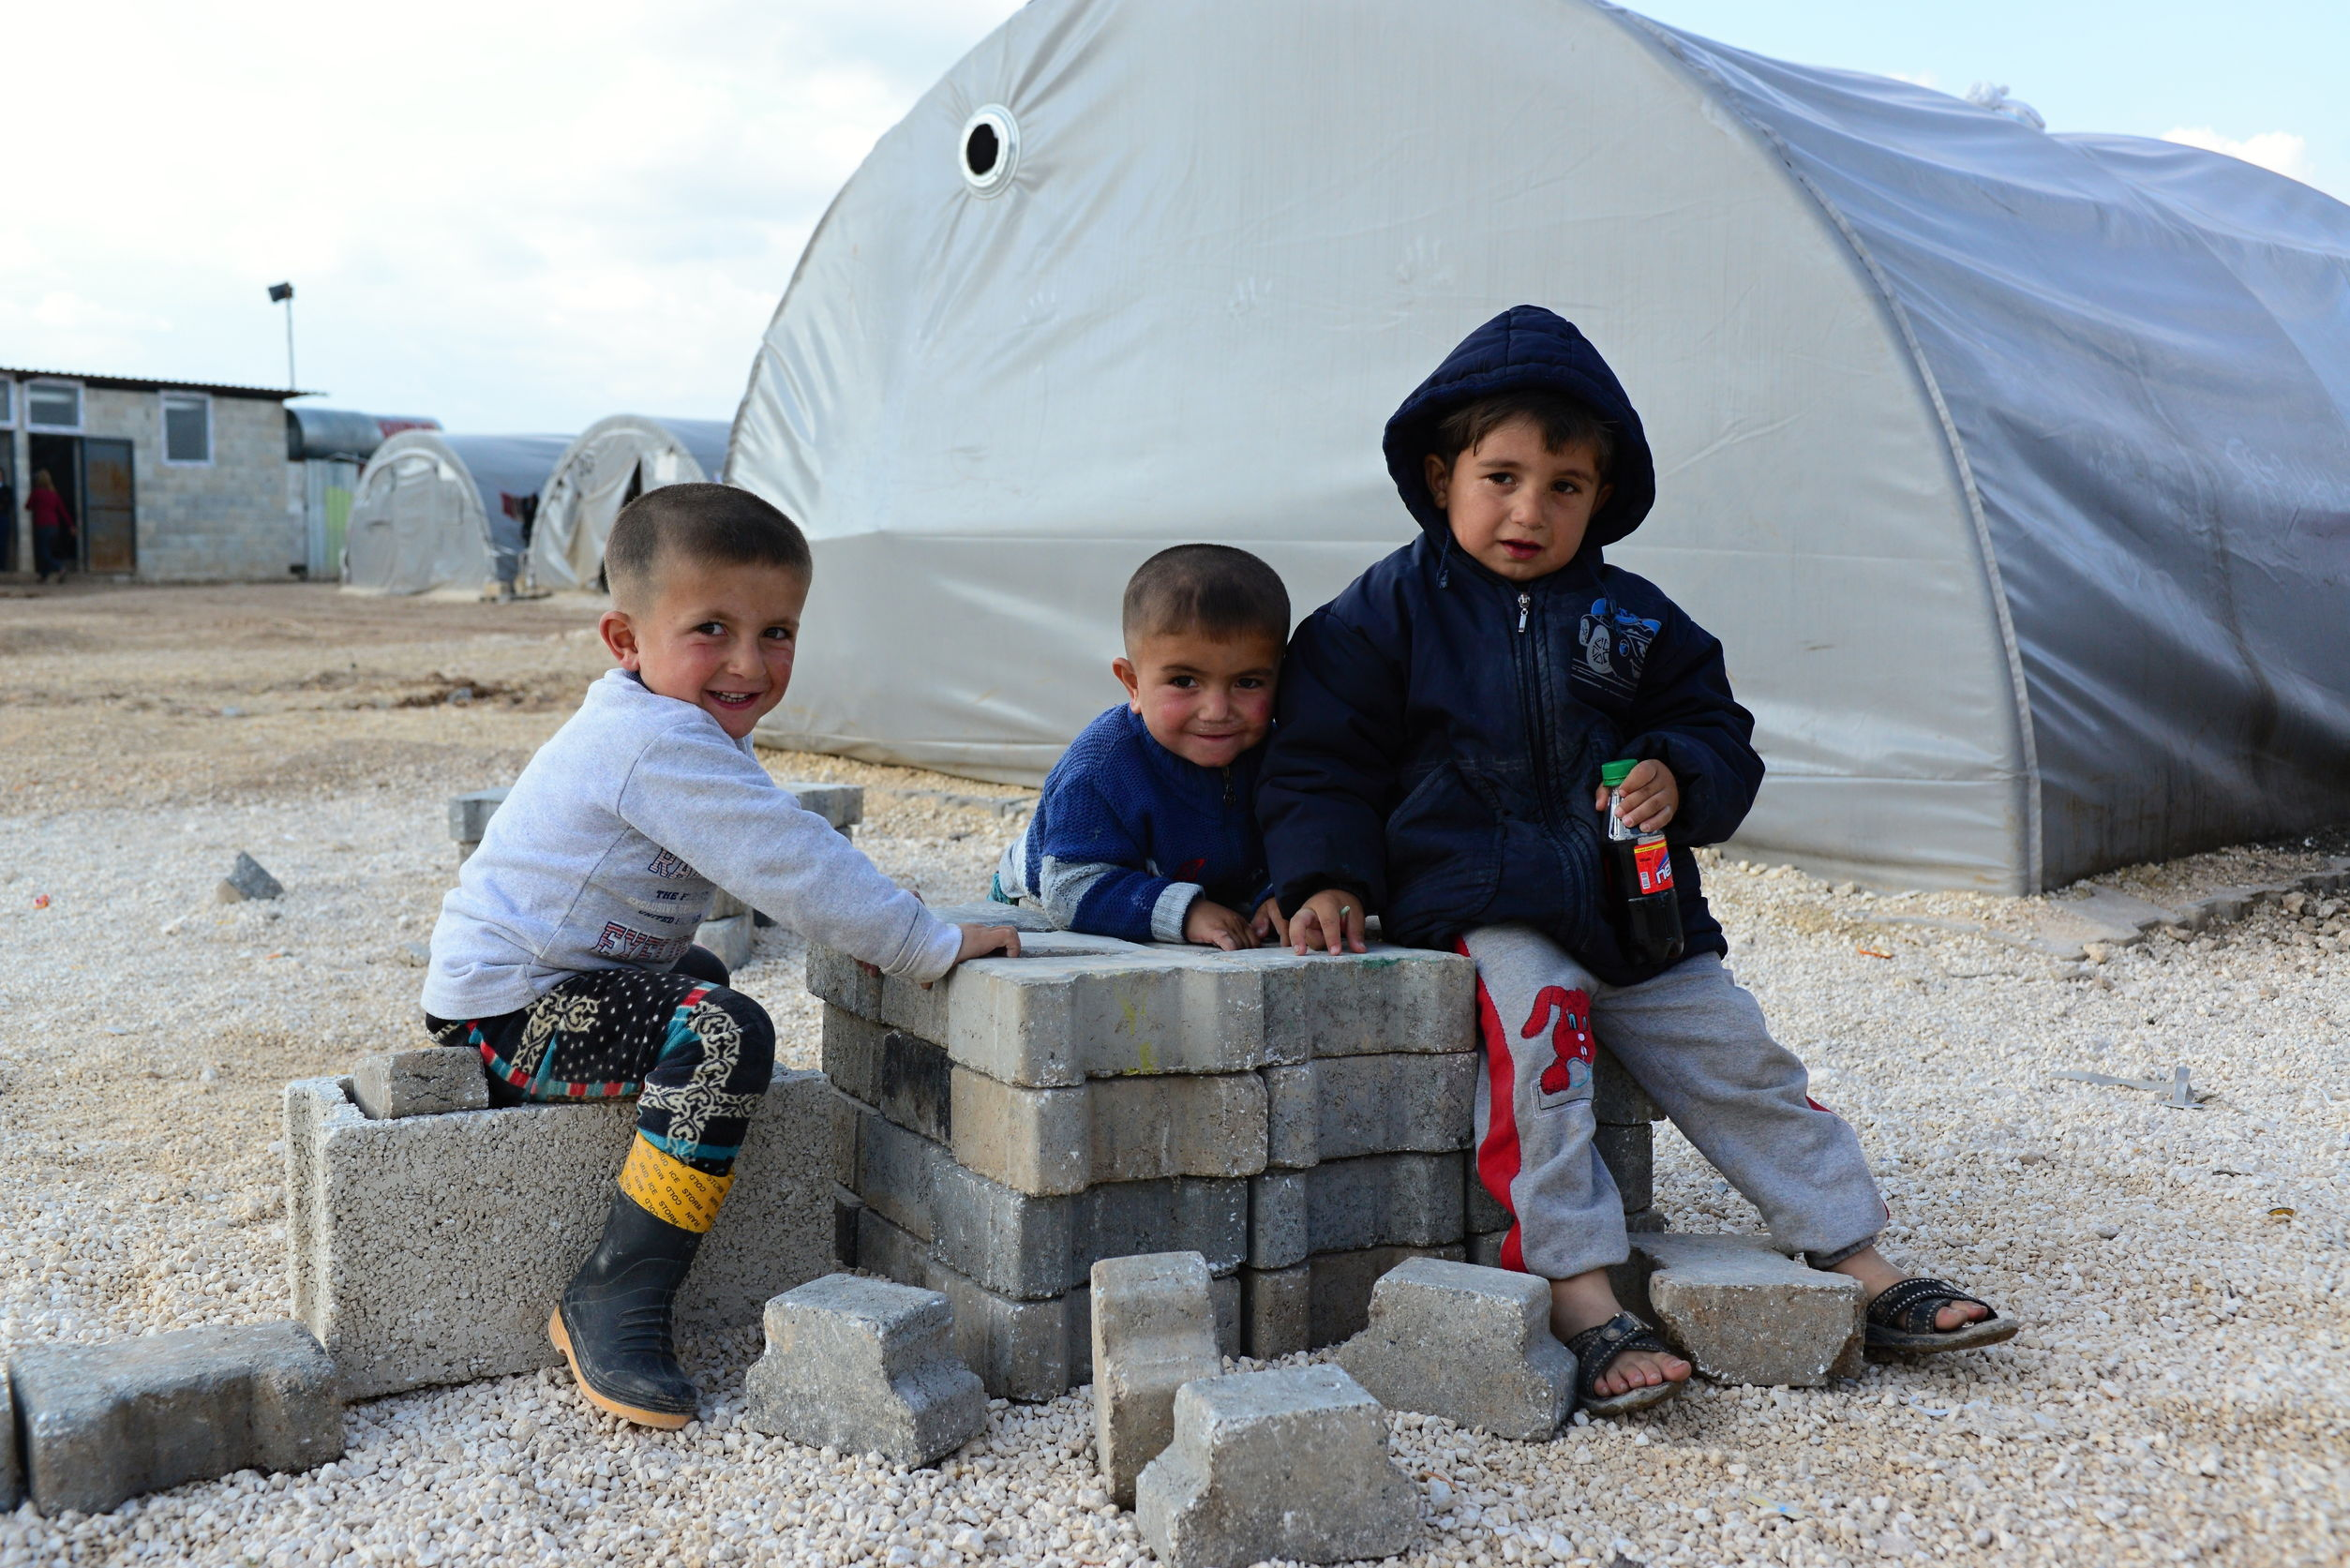 Syrian children from Kobane in a refugee camp in Suruc, Turkey. [Photo: radekprocyk / 123RF]